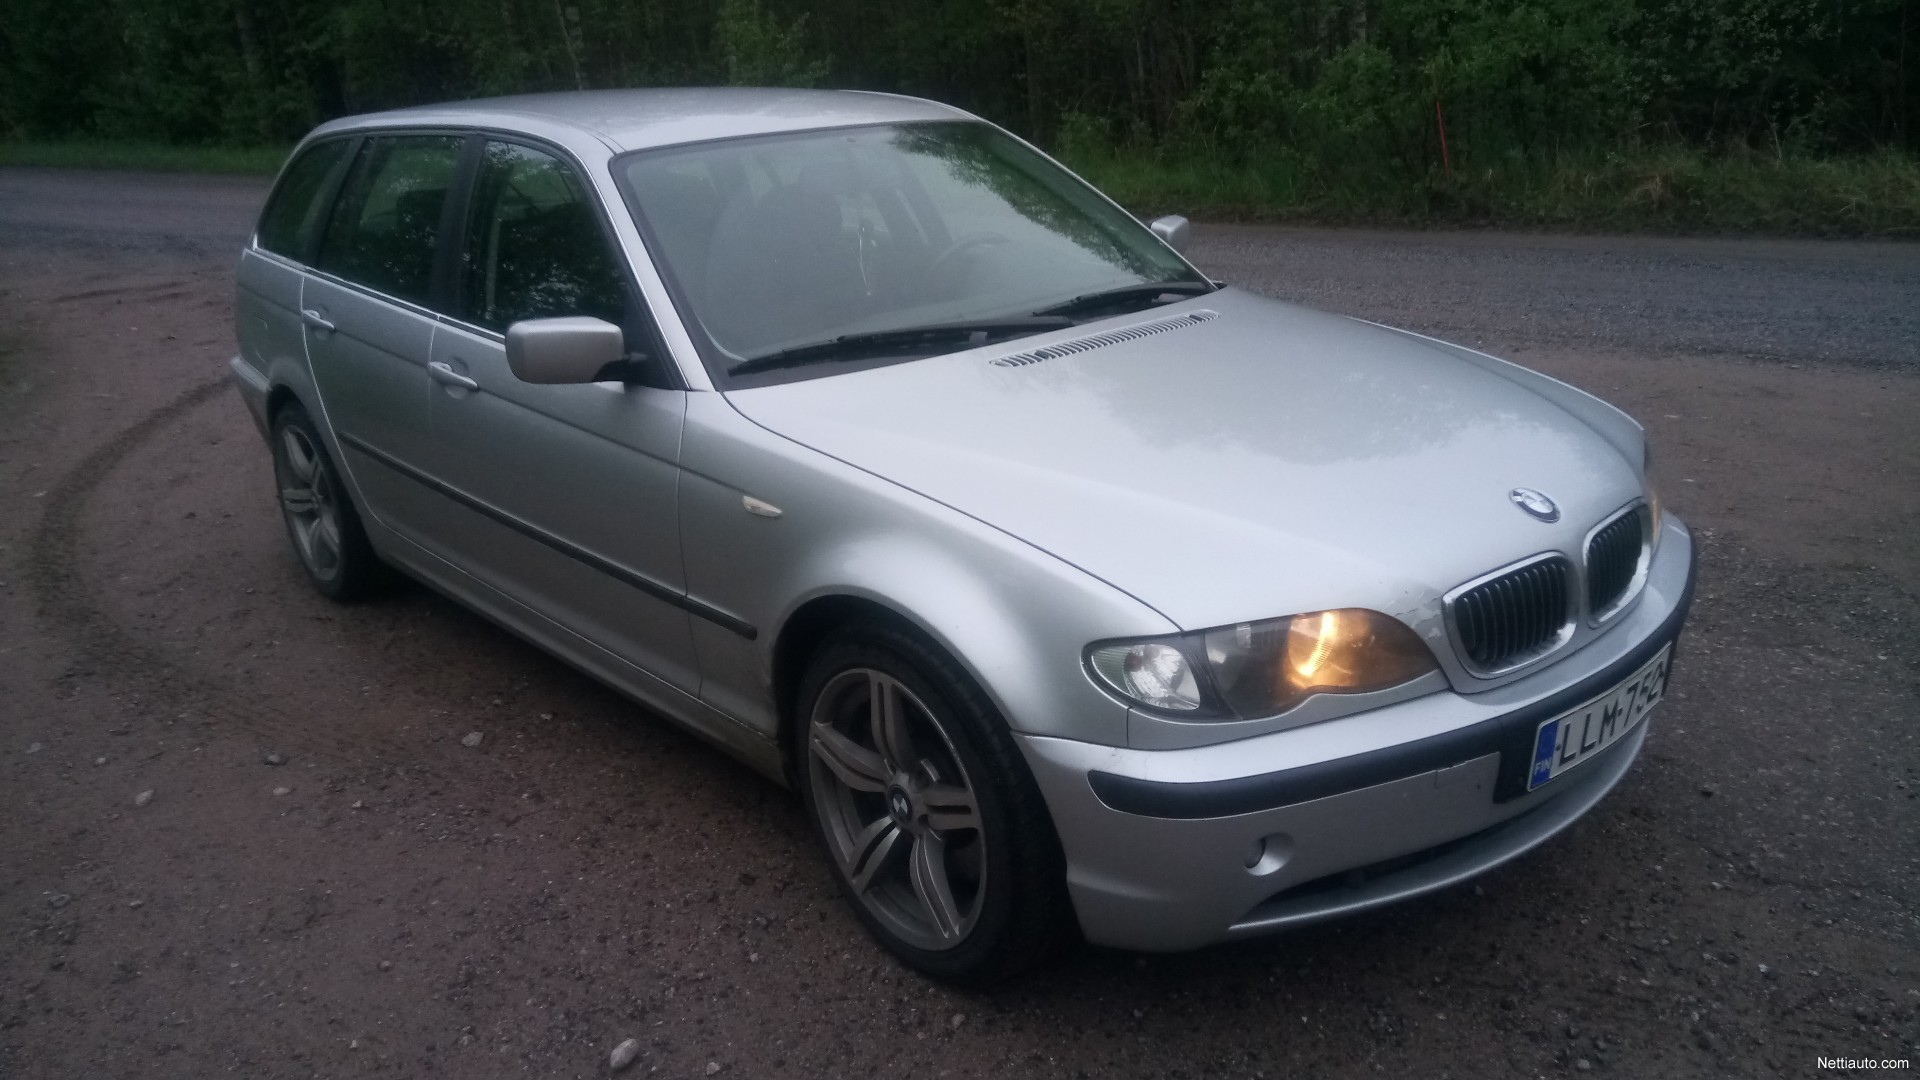 bmw 330 xd touring 5d 330xd neliveto station wagon 2003 used vehicle nettiauto. Black Bedroom Furniture Sets. Home Design Ideas